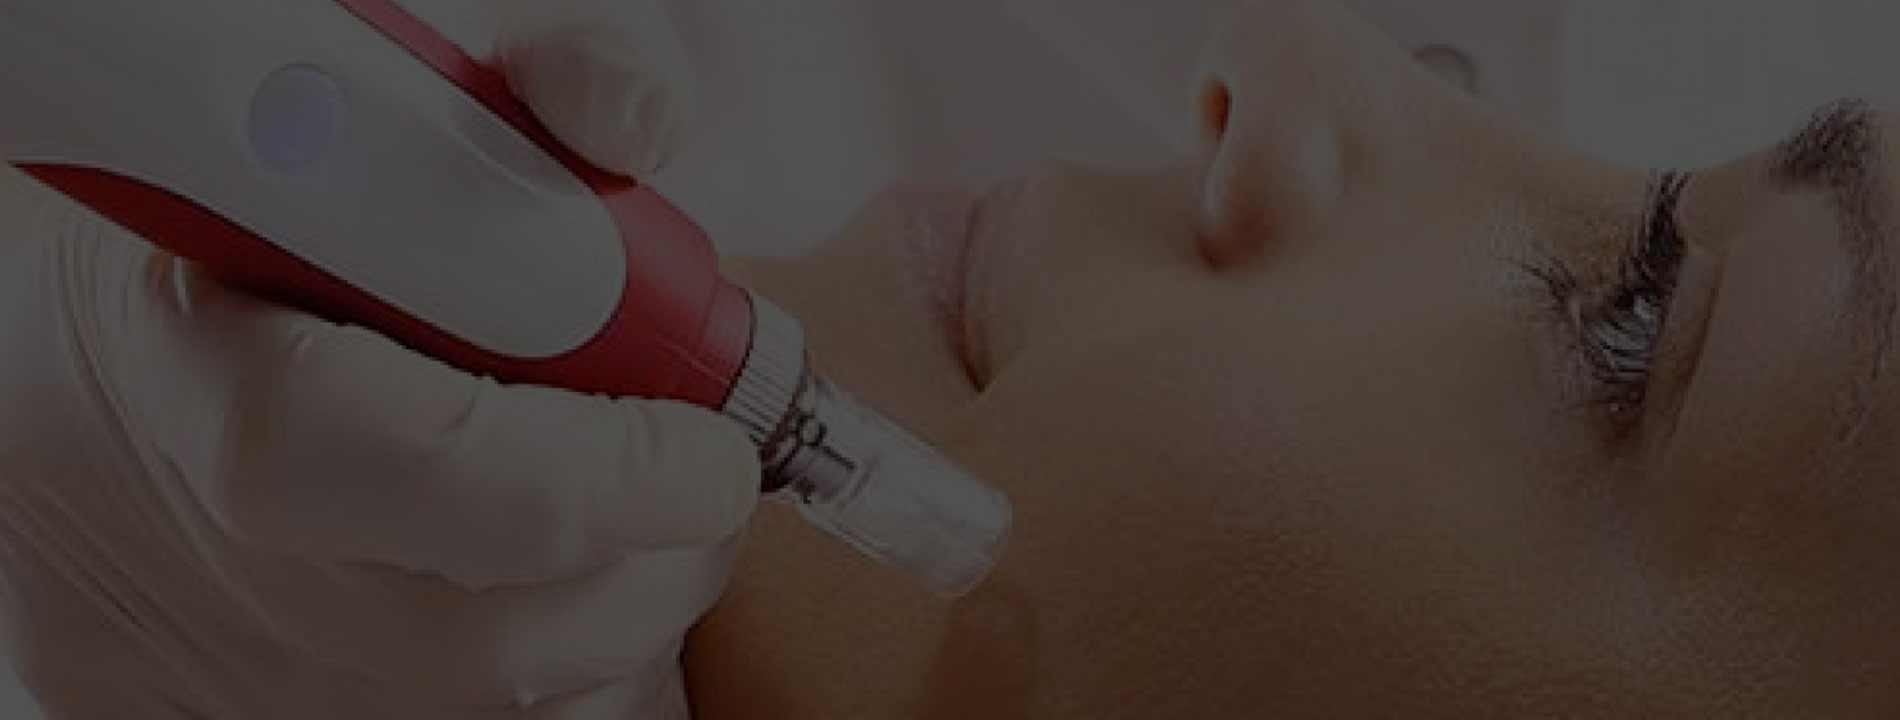 Micro-Needling for Collagen Induction